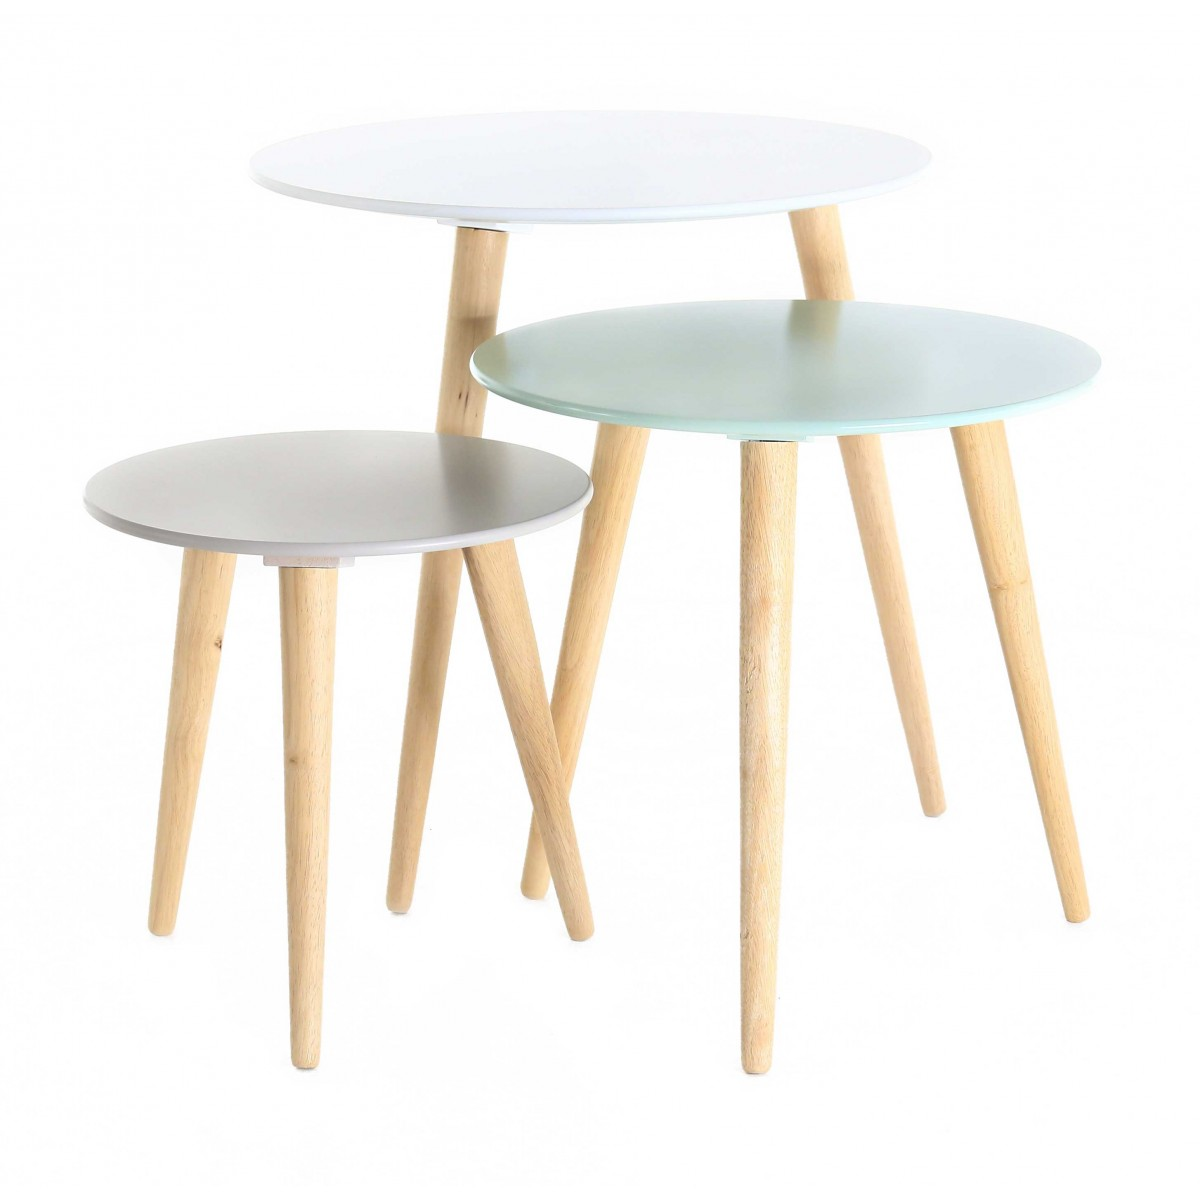 Set de 3 tables gigognes rondes scandinaves mooviin - Table basse gigogne blanche ...